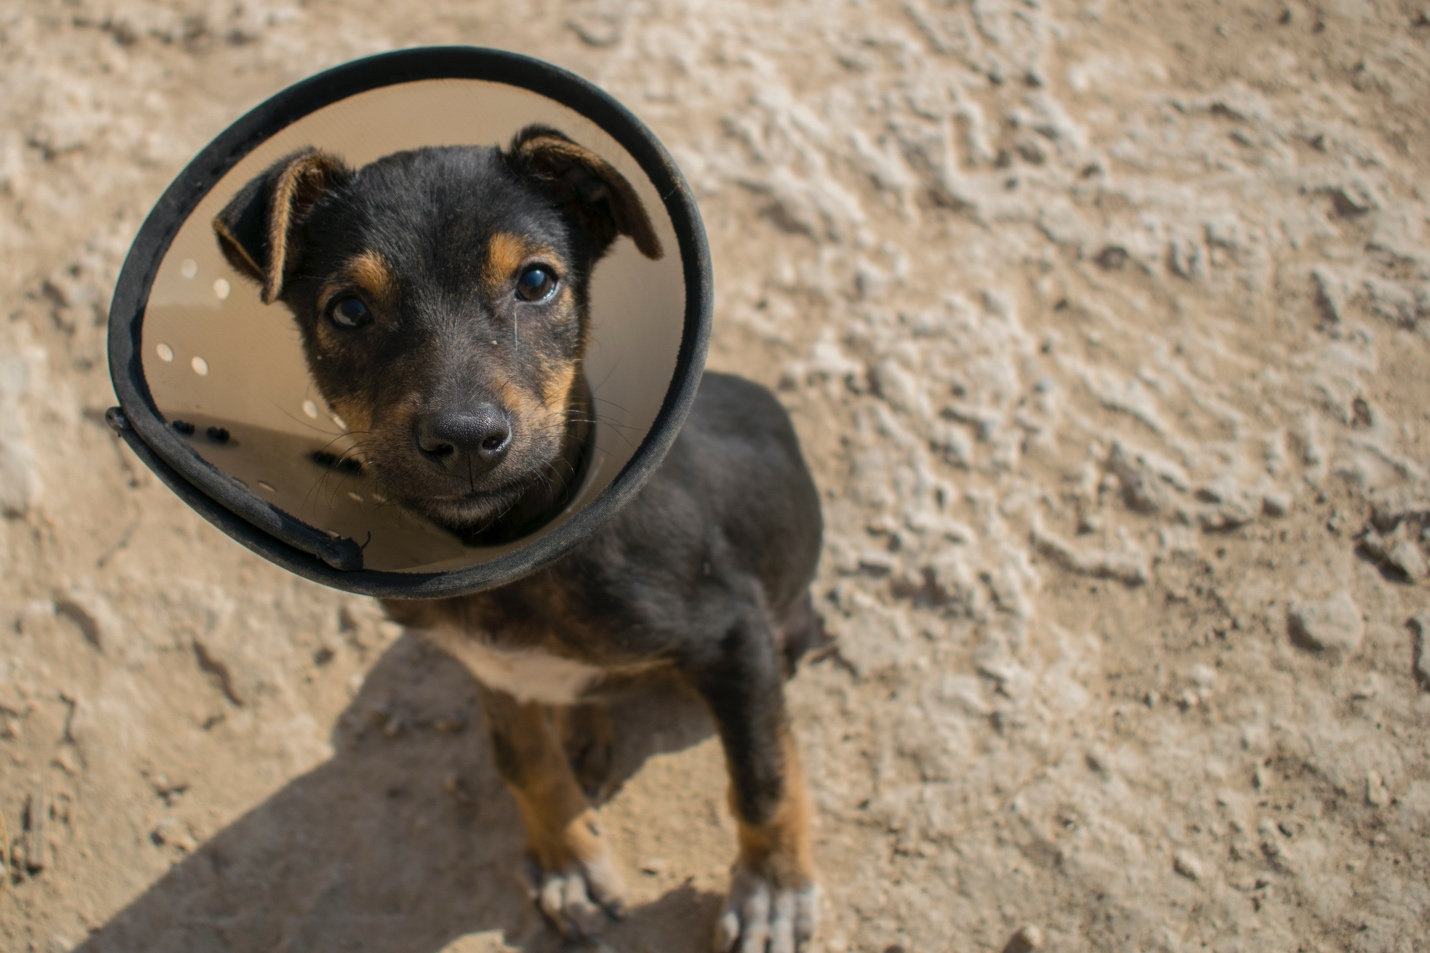 Top 5 Reasons Why You Should Spay or Neuter Your Pet